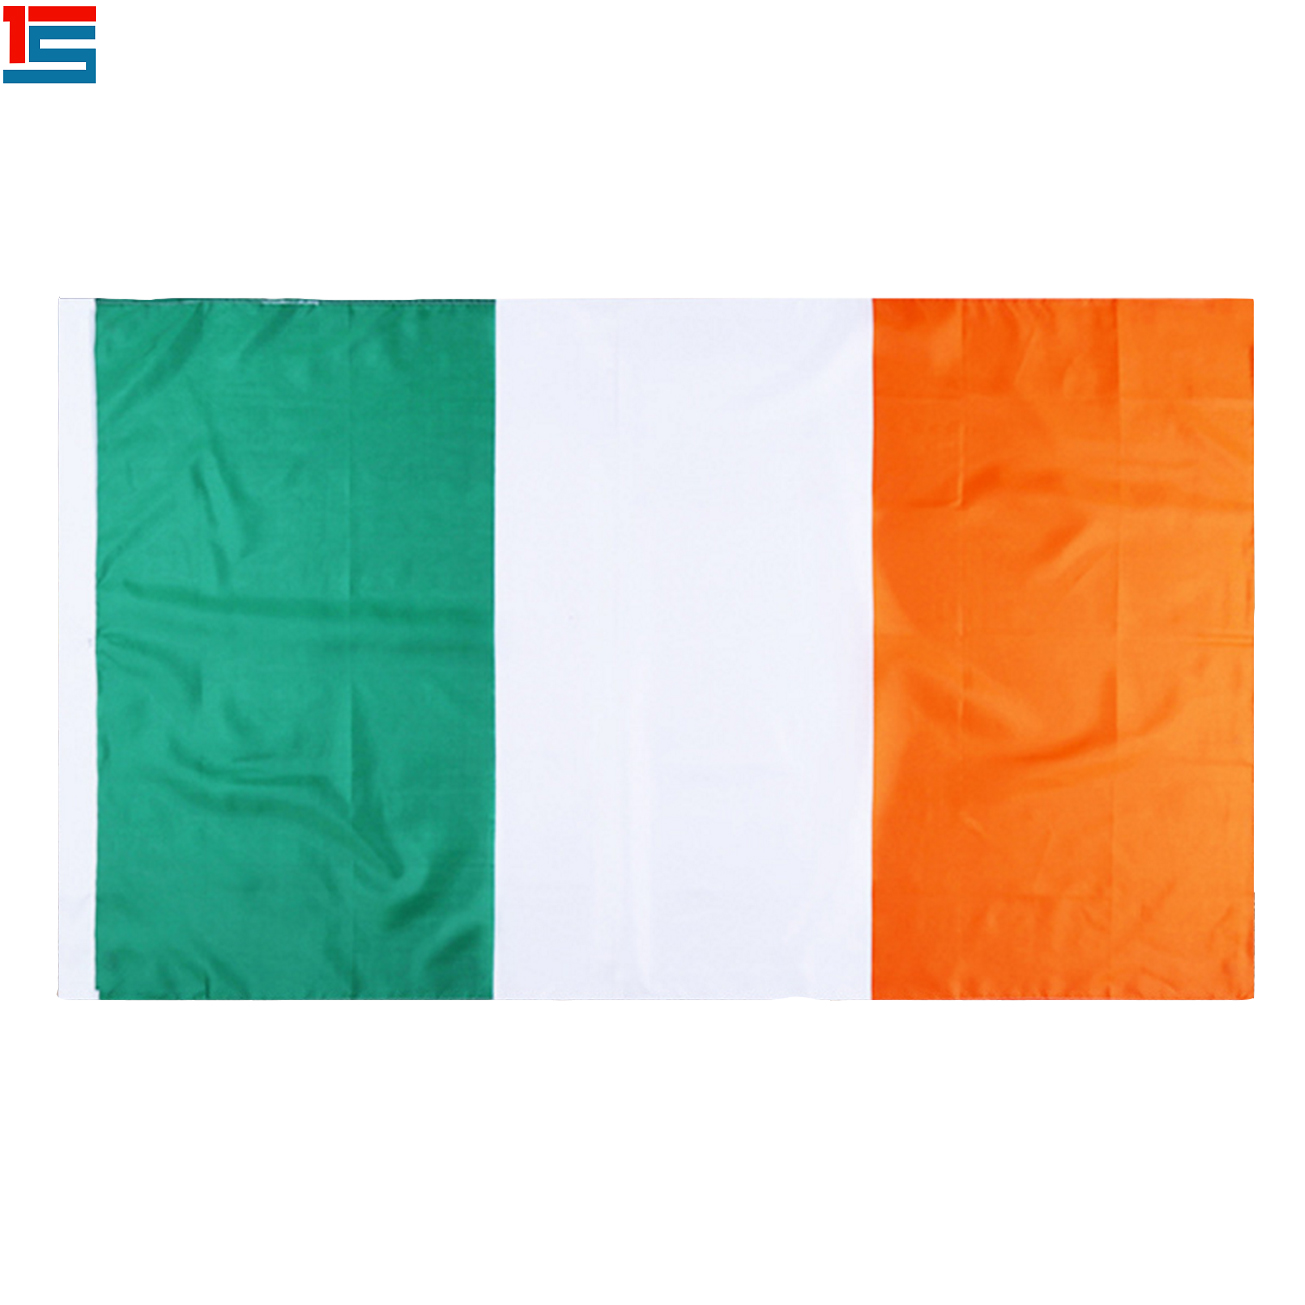 150x90cm IRELAND ULSTER PROVINCE FLAG NEW 5 x 3 FOOT